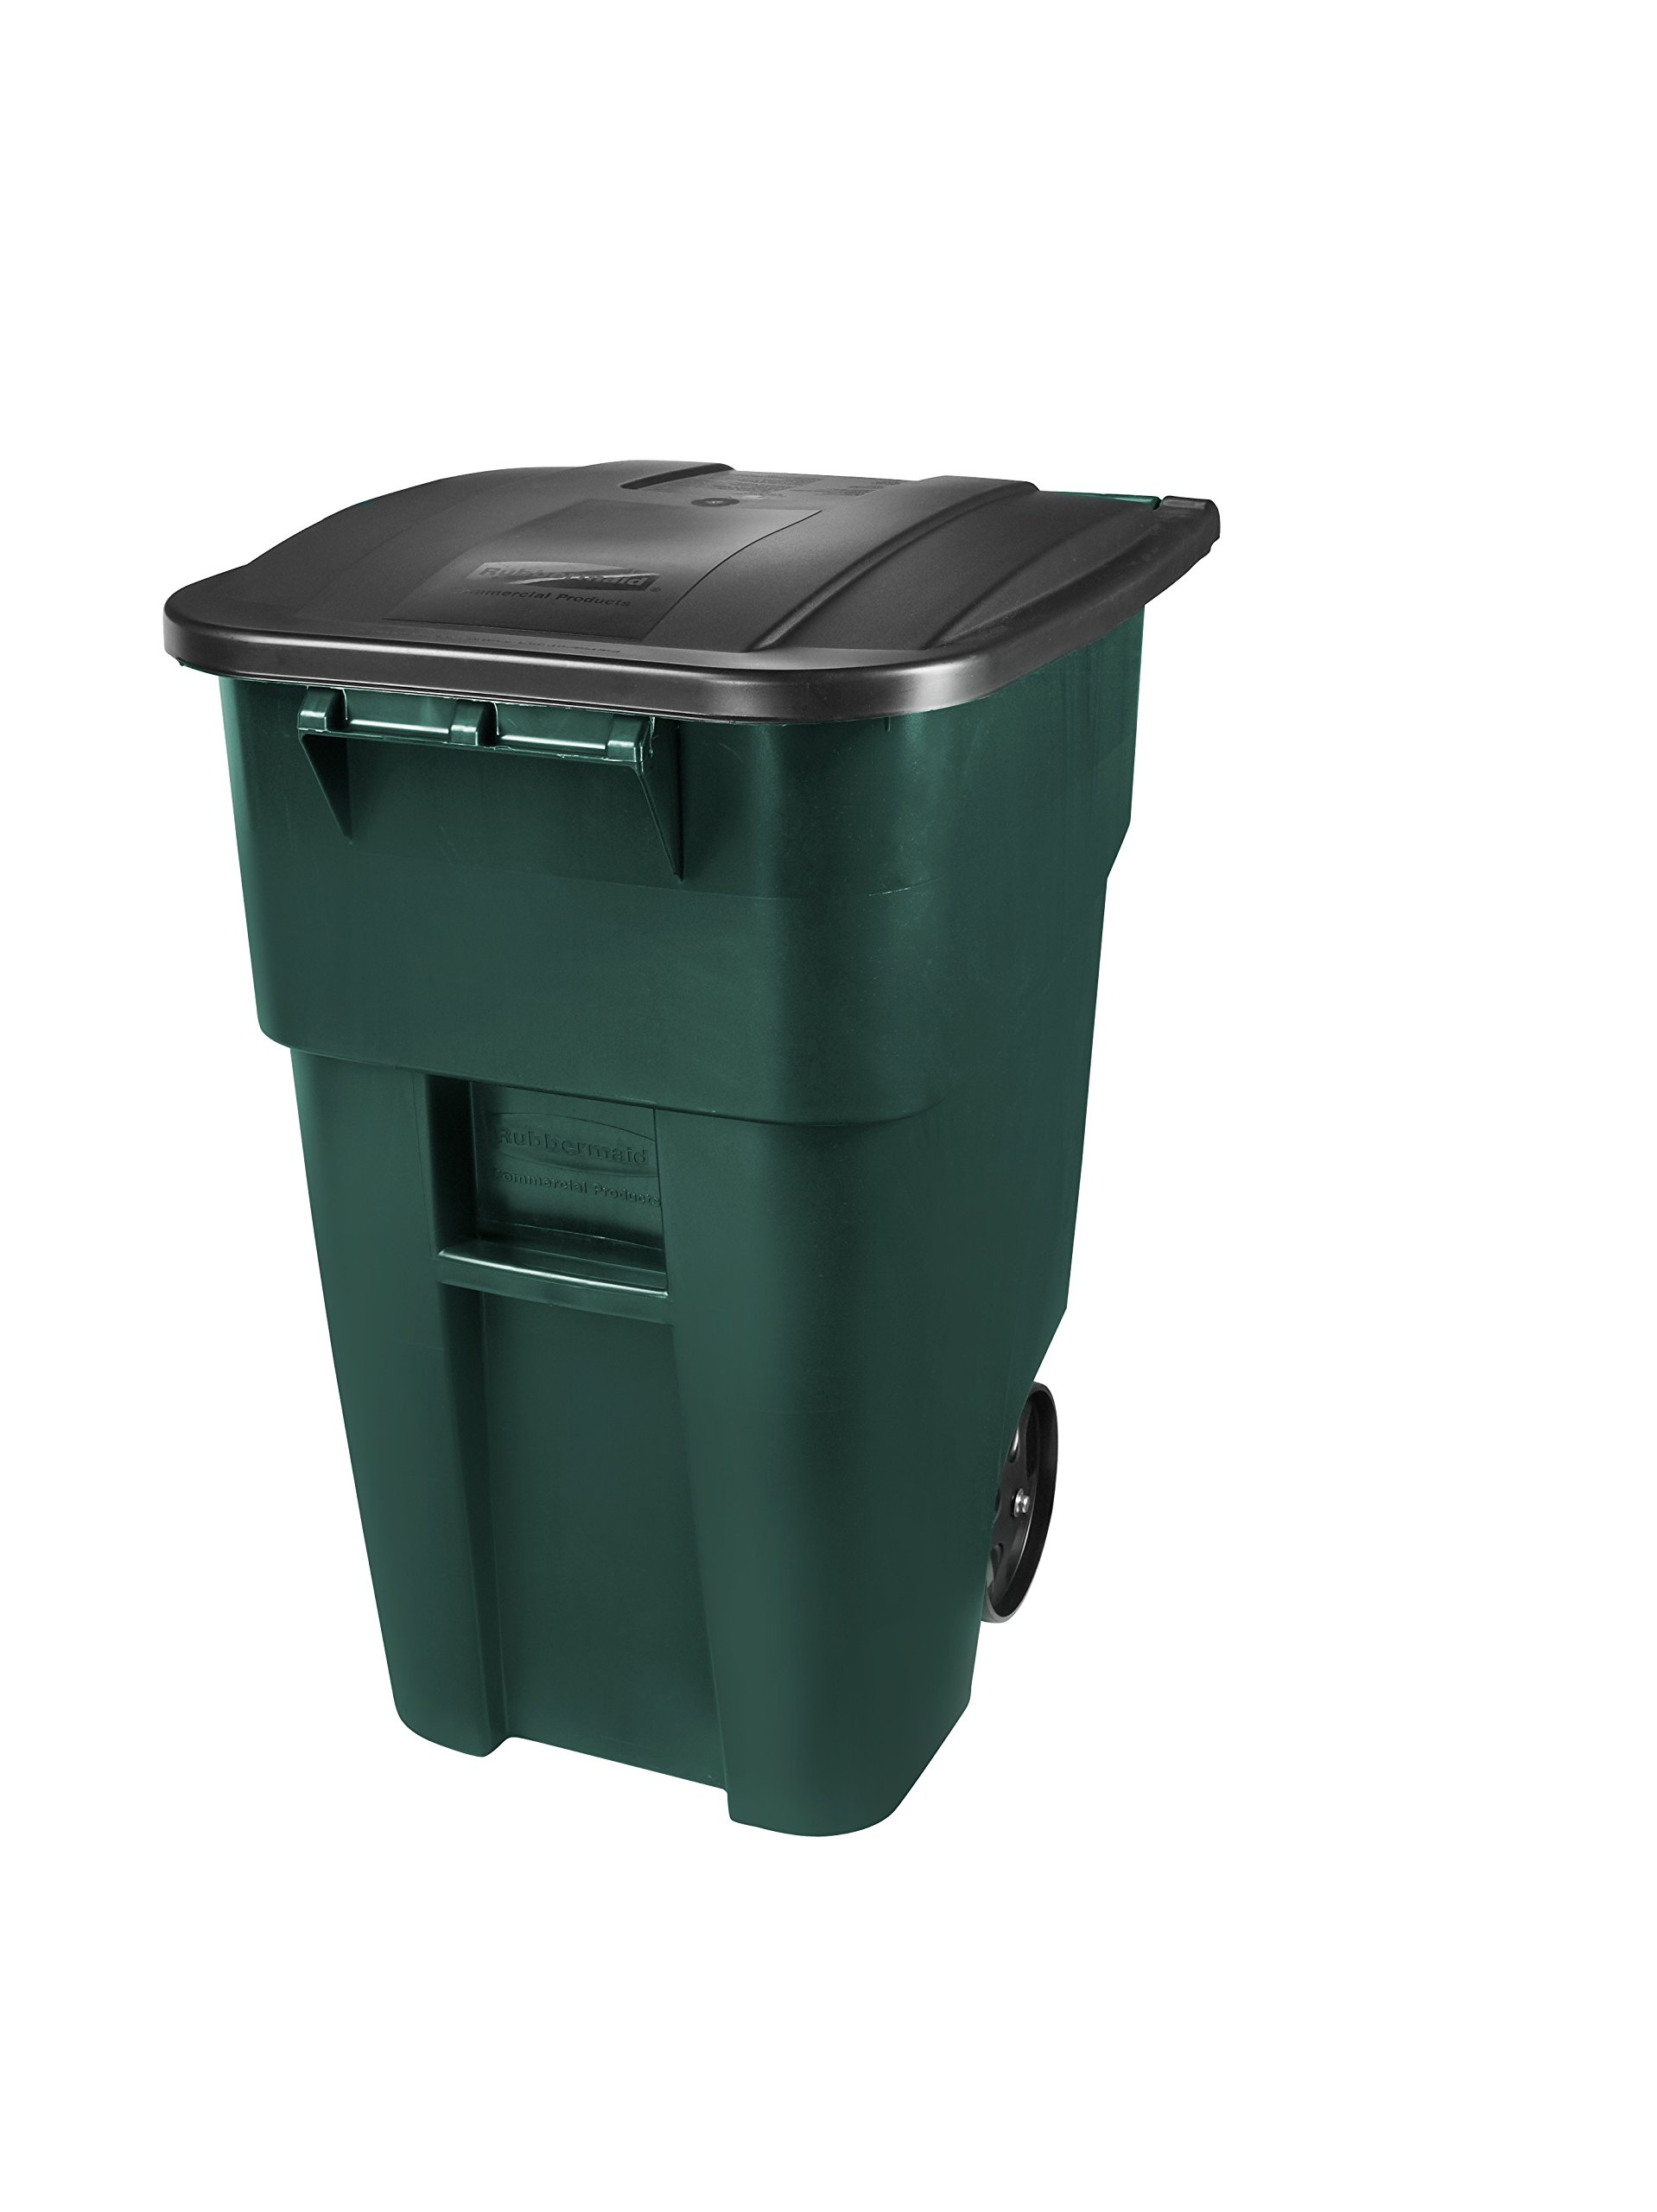 Rubbermaid Commercial Products 1829411 BRUTE Heavy-Duty Round Waste/Utility Container, 50 gal, Green